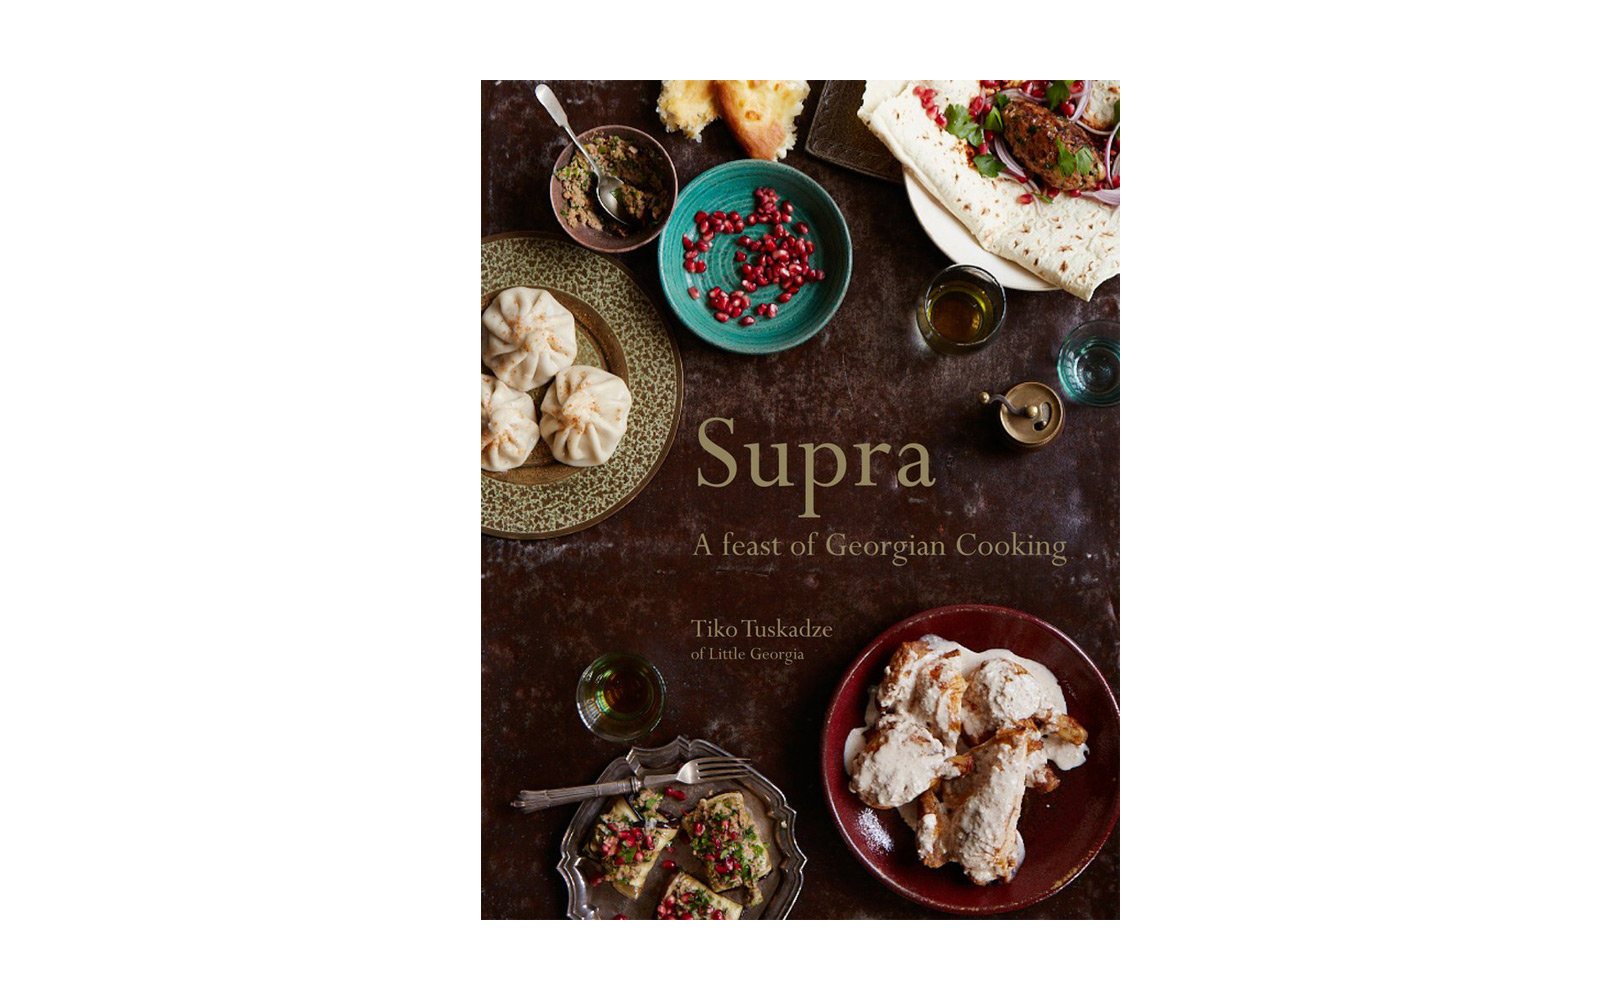 oklava recipes from a turkish cypriot kitchen english edition